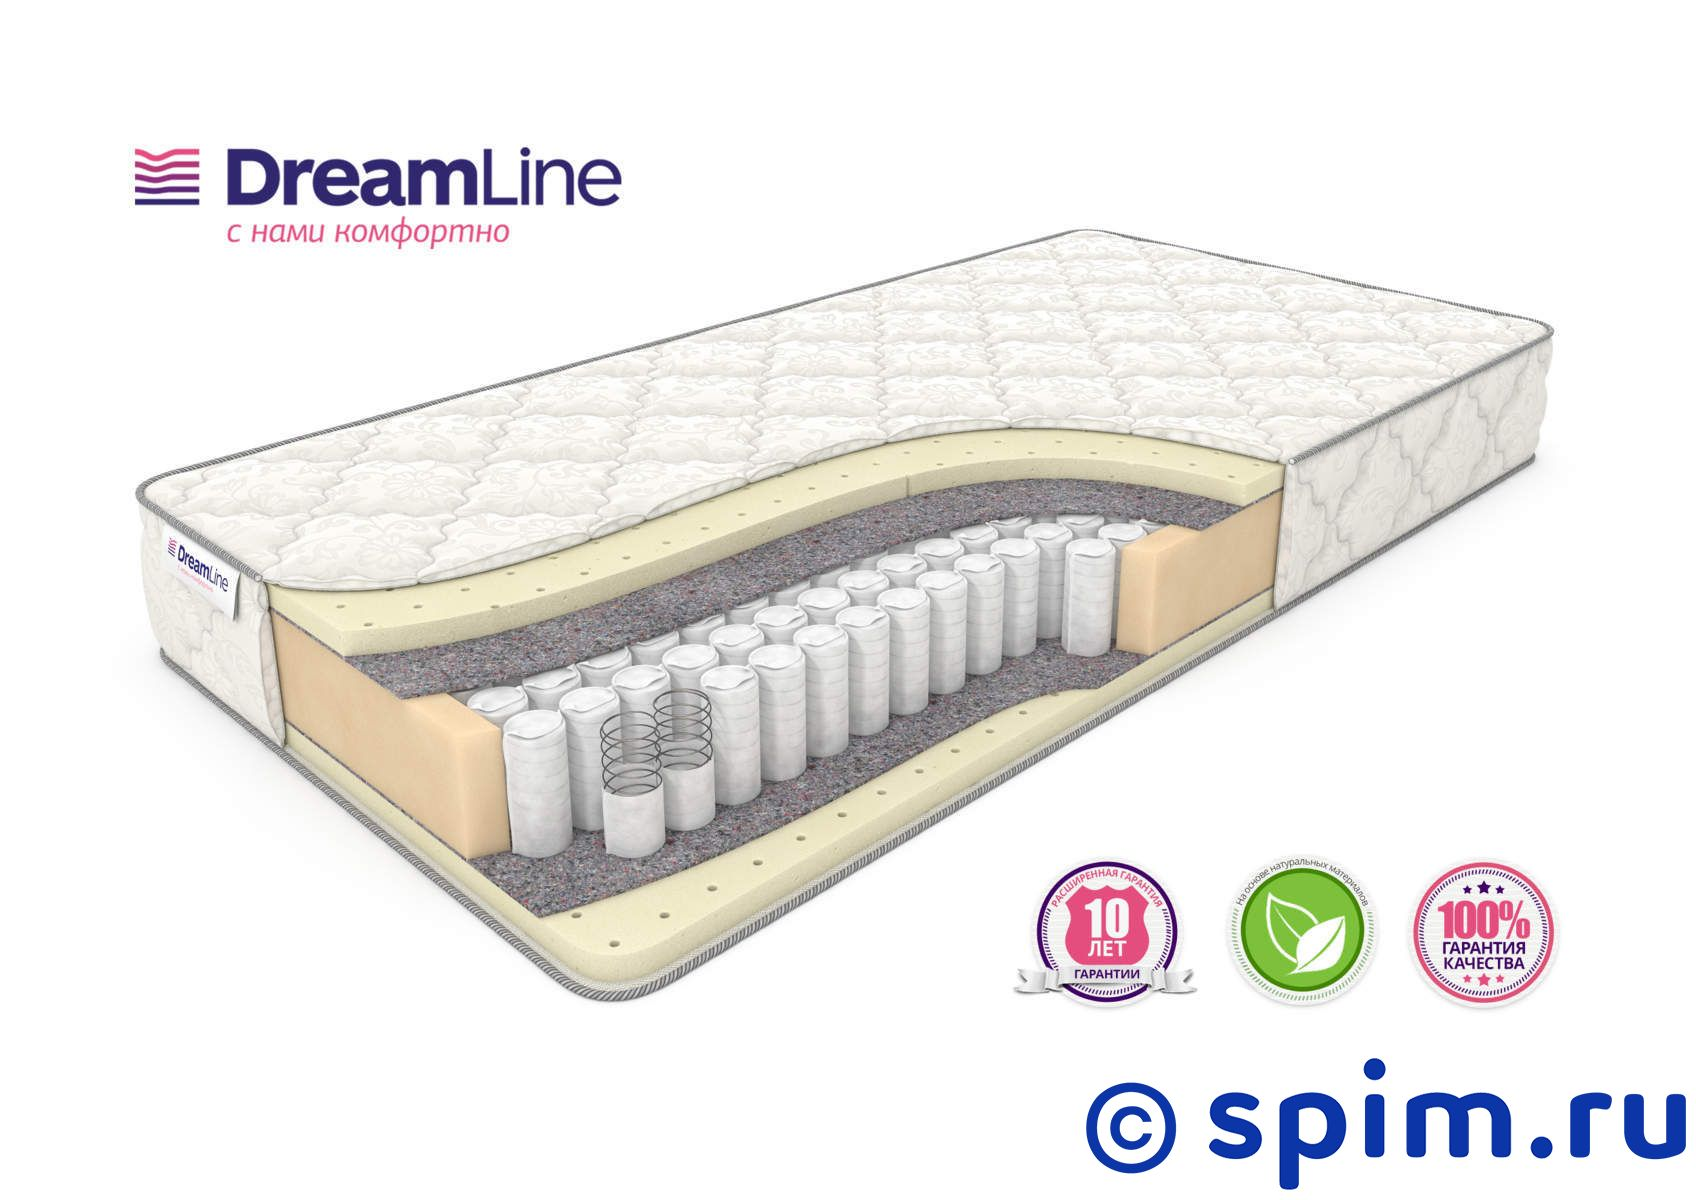 Матрас DreamLine Sleep 3 Tfk 80х200 см